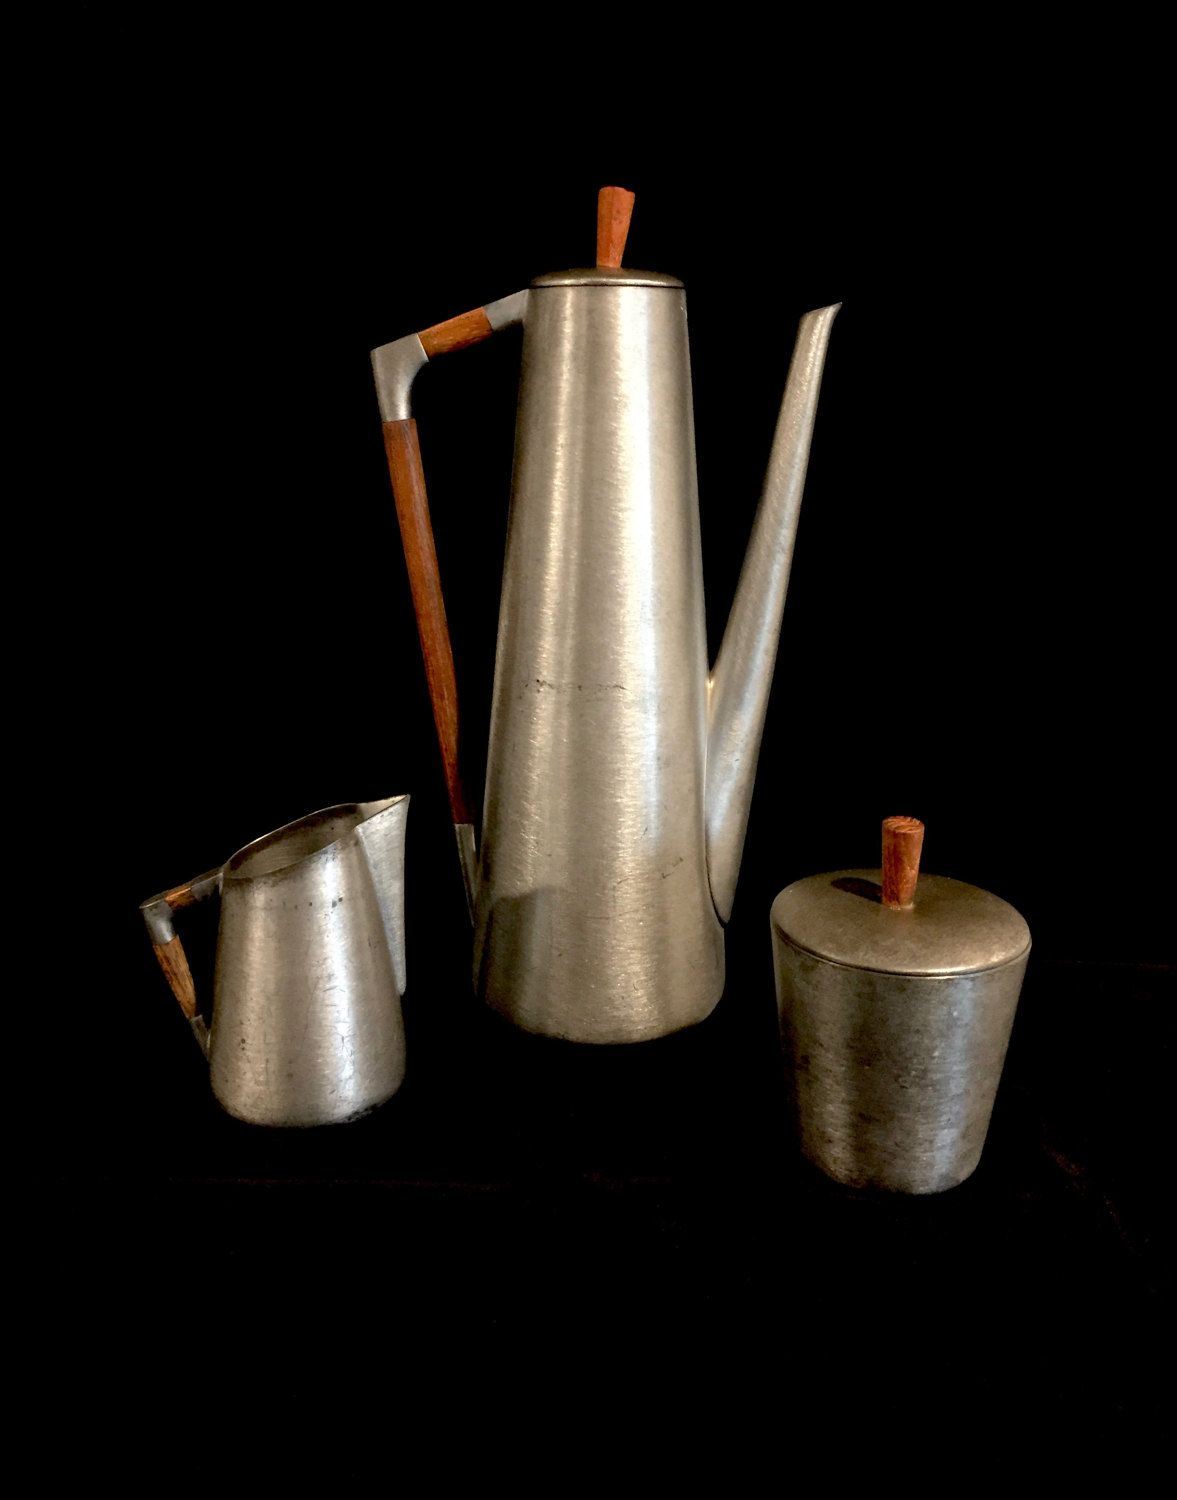 Iconic midcentury coffee serving set royal holland pewter teak pewter coffee pot sugar and creamer by daalderop dutch design by provinceshop on